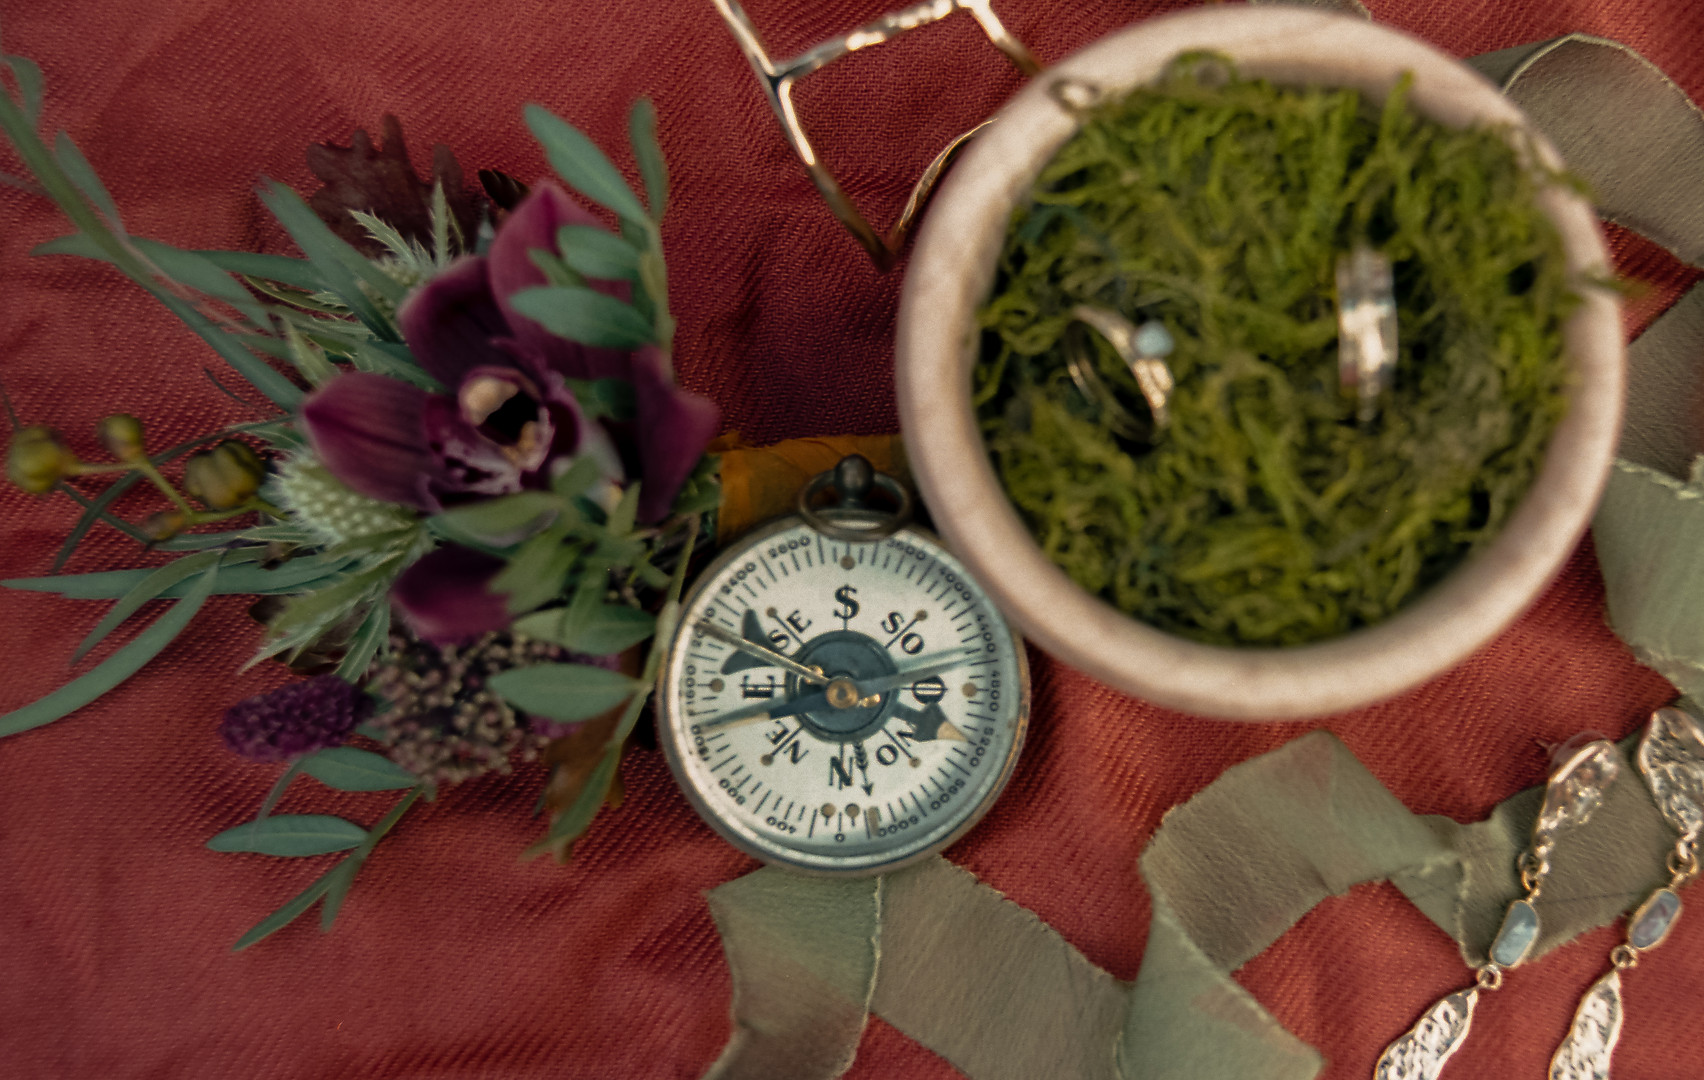 Wedding rings, jewelry, boutonierrre, and ribbon with compass